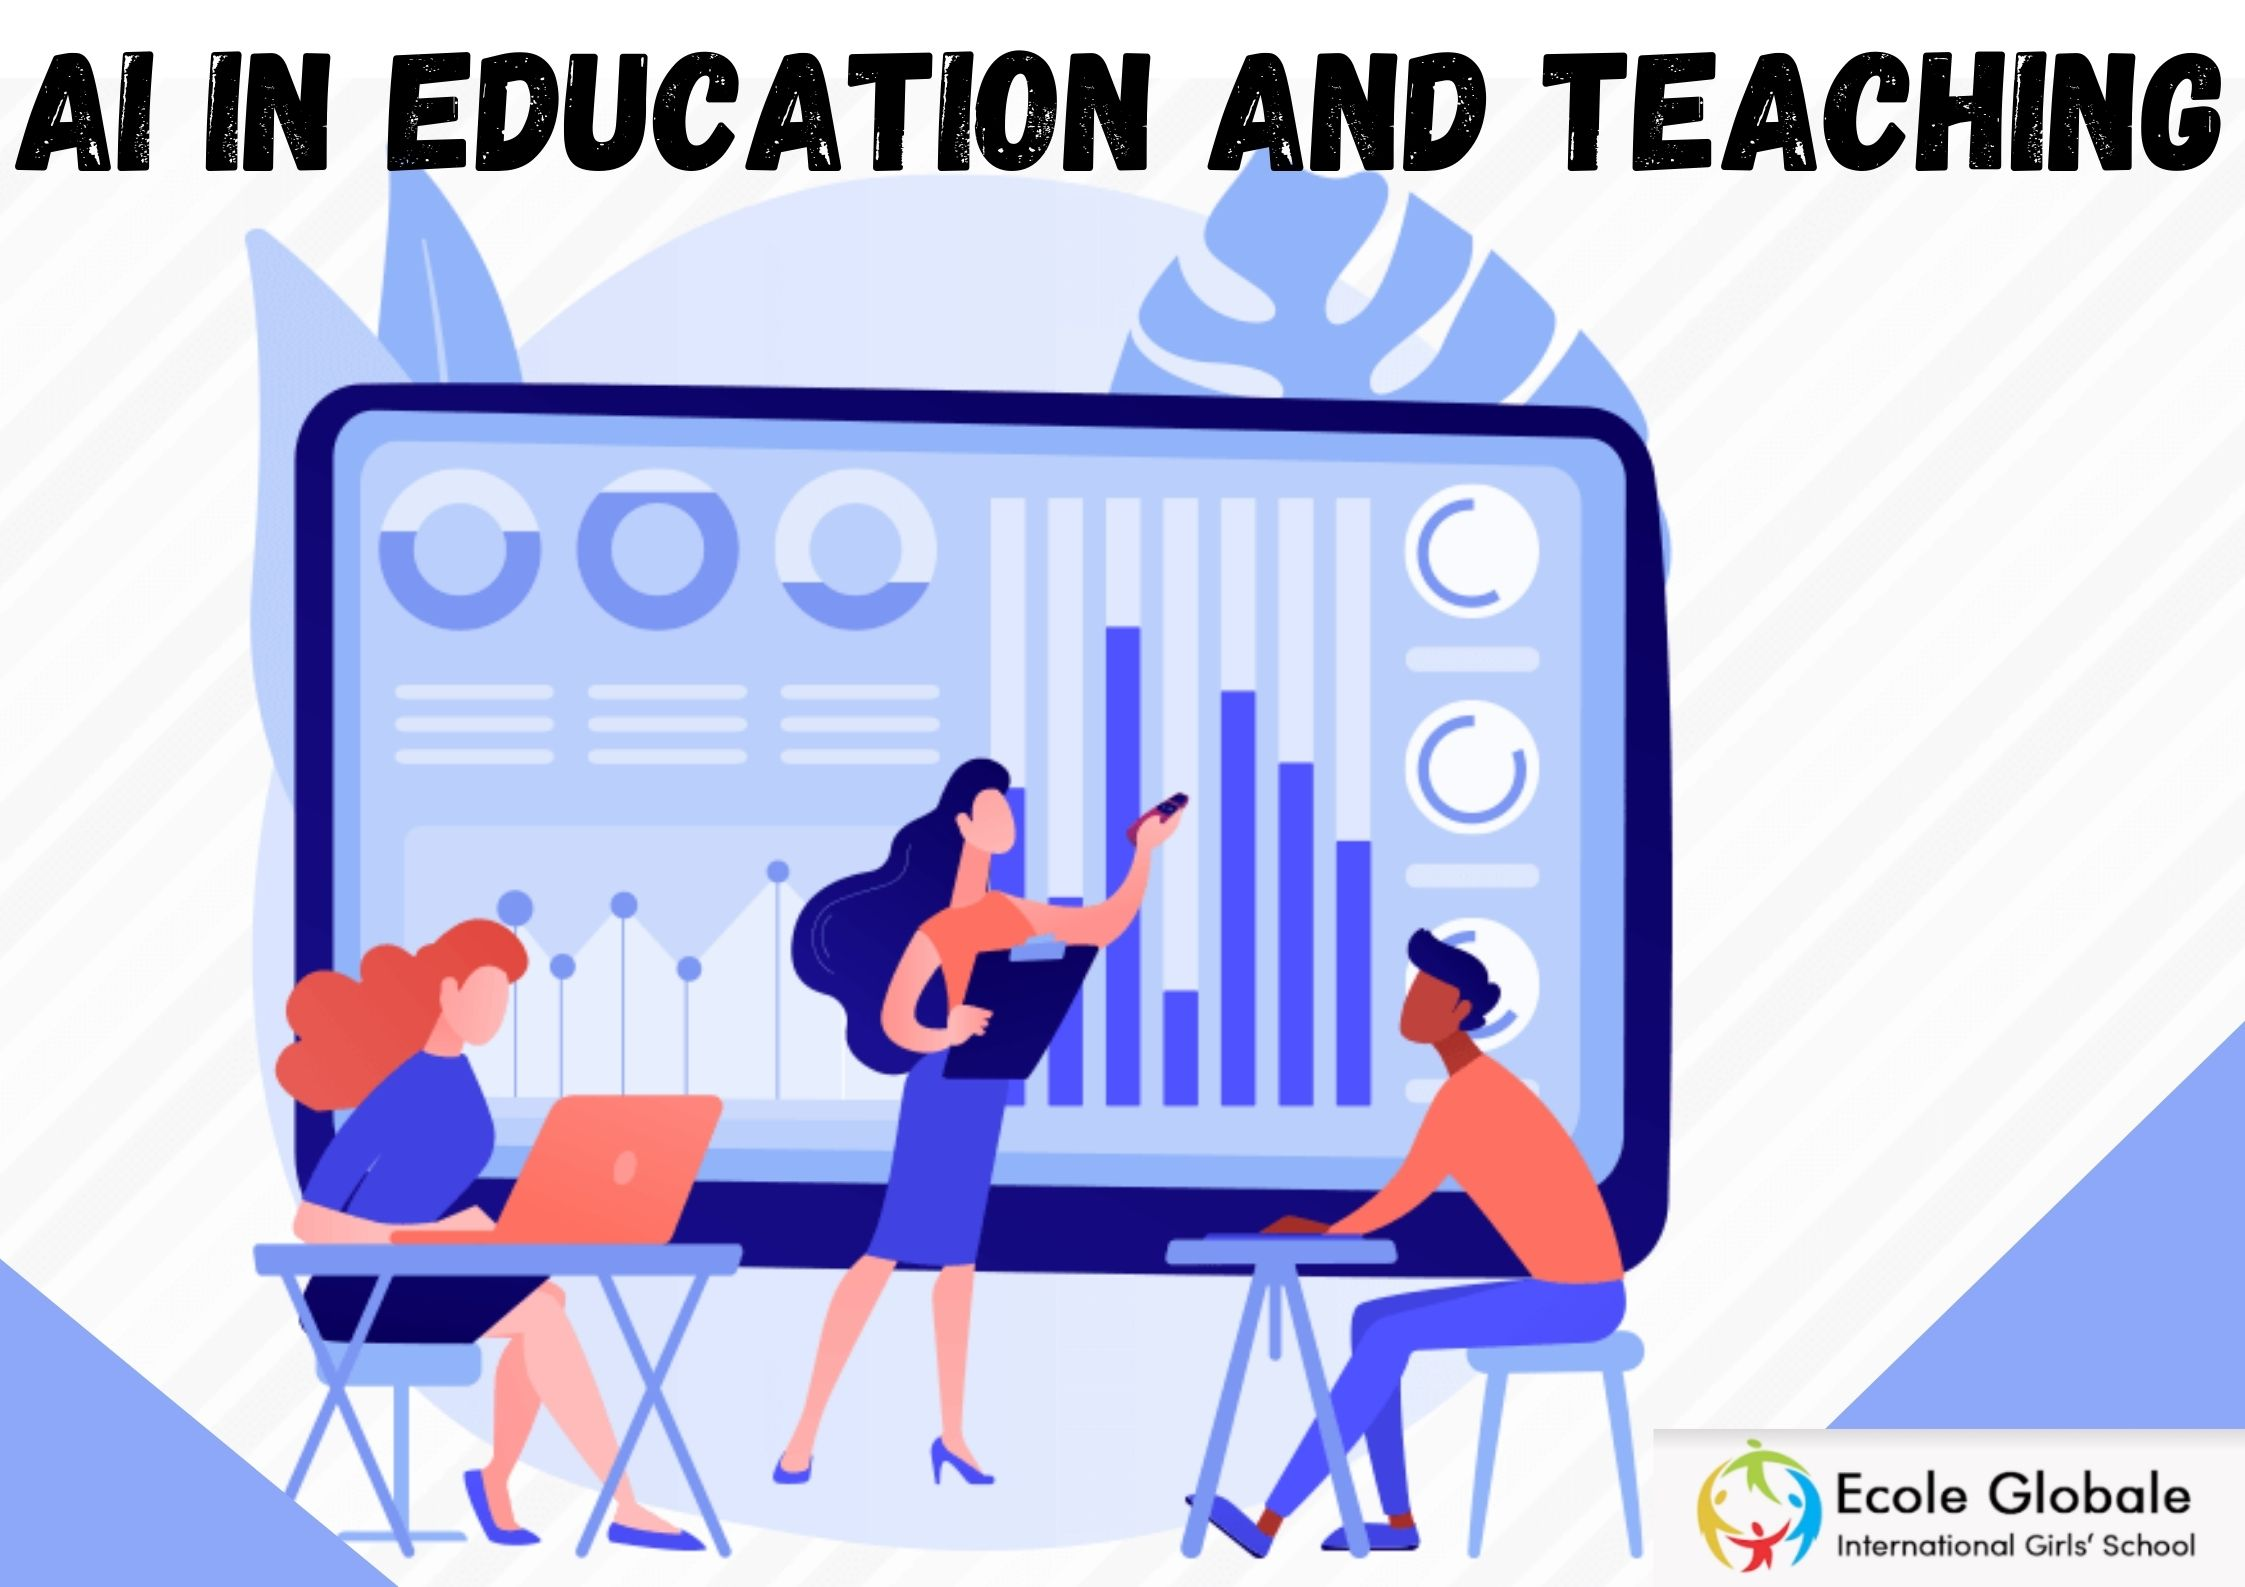 AI IN EDUCATION AND TEACHING